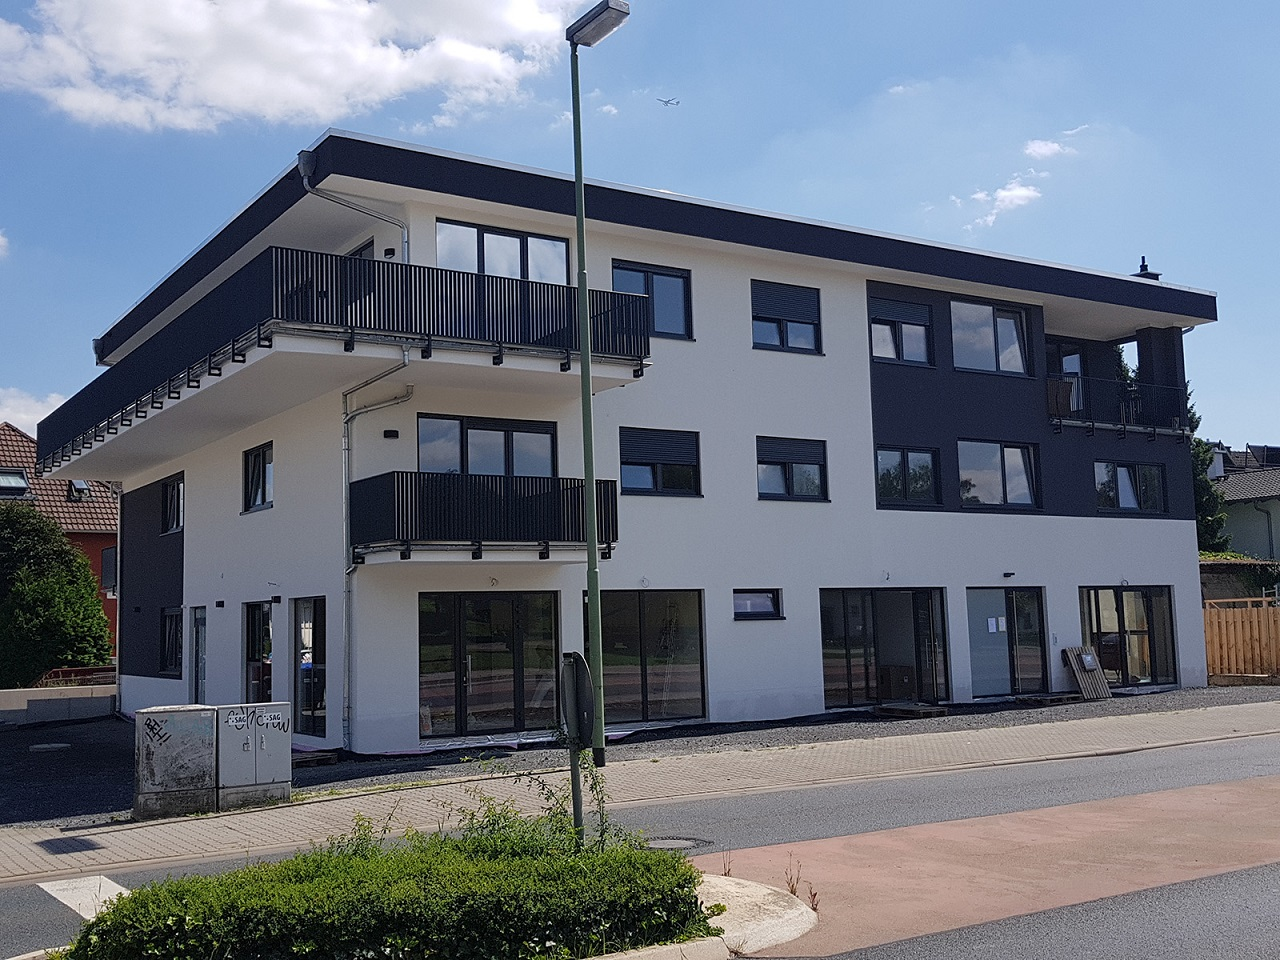 Find Places to Stay in Bad Vilbel on Airbnb